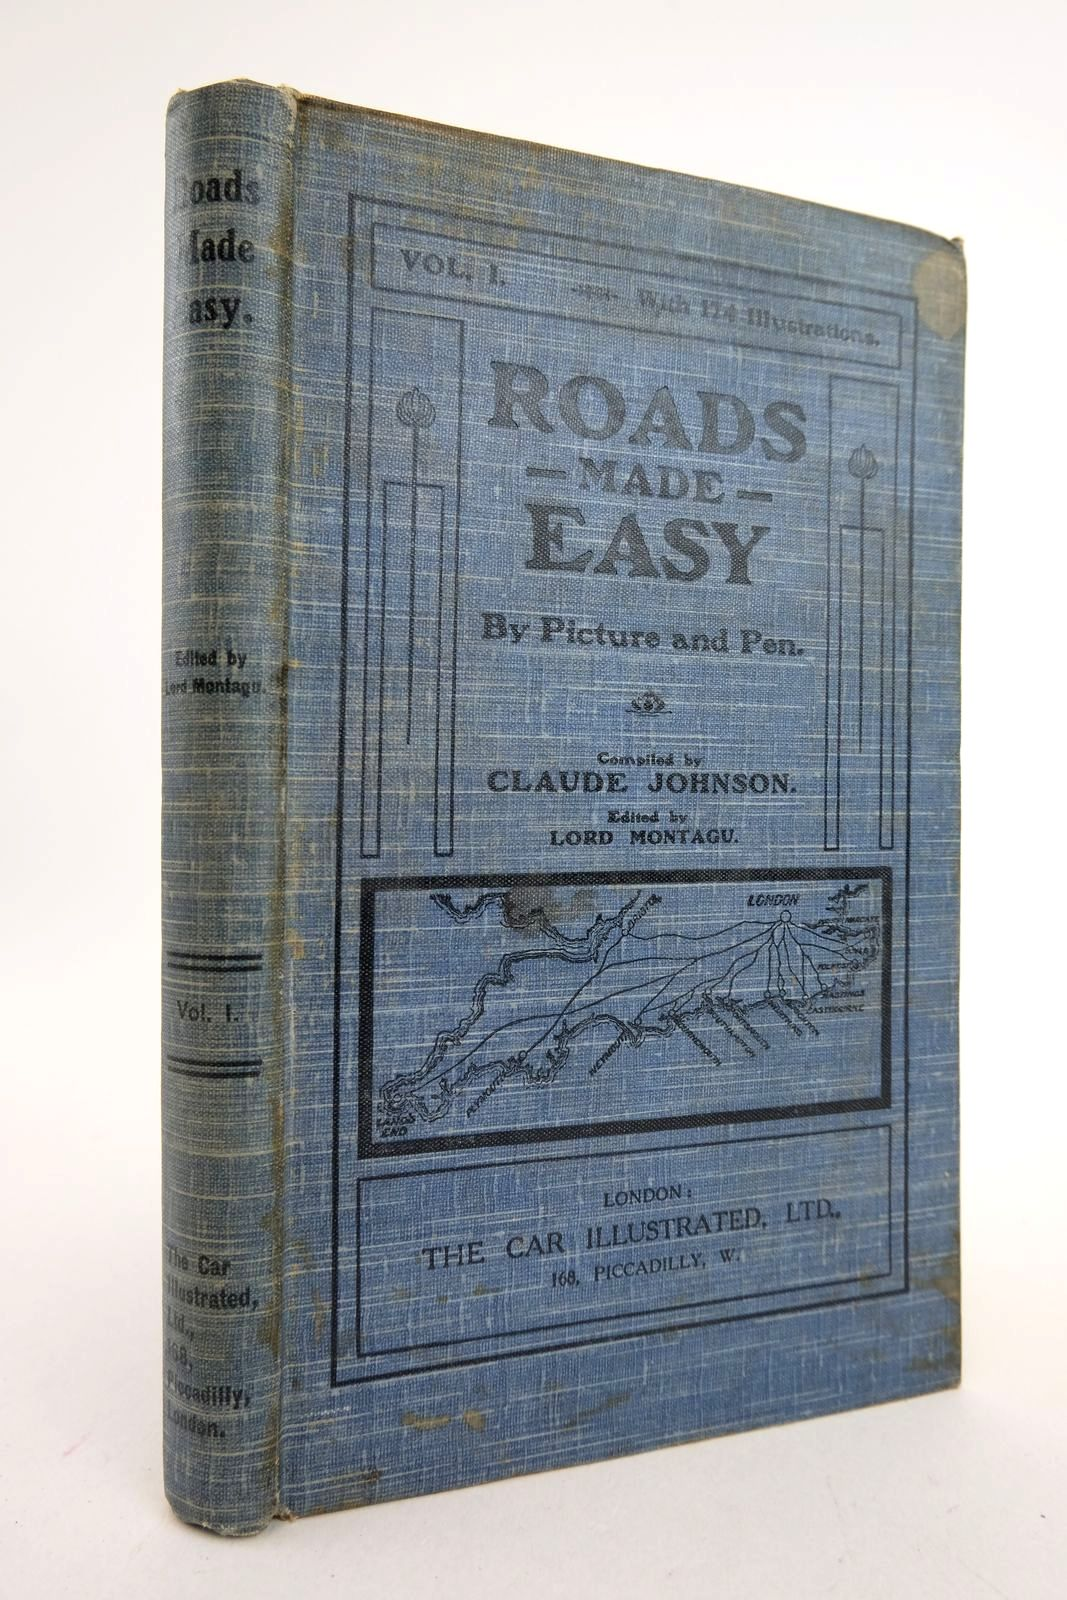 Photo of ROADS MADE EASY IN PICTURE AND PEN- Stock Number: 2133279